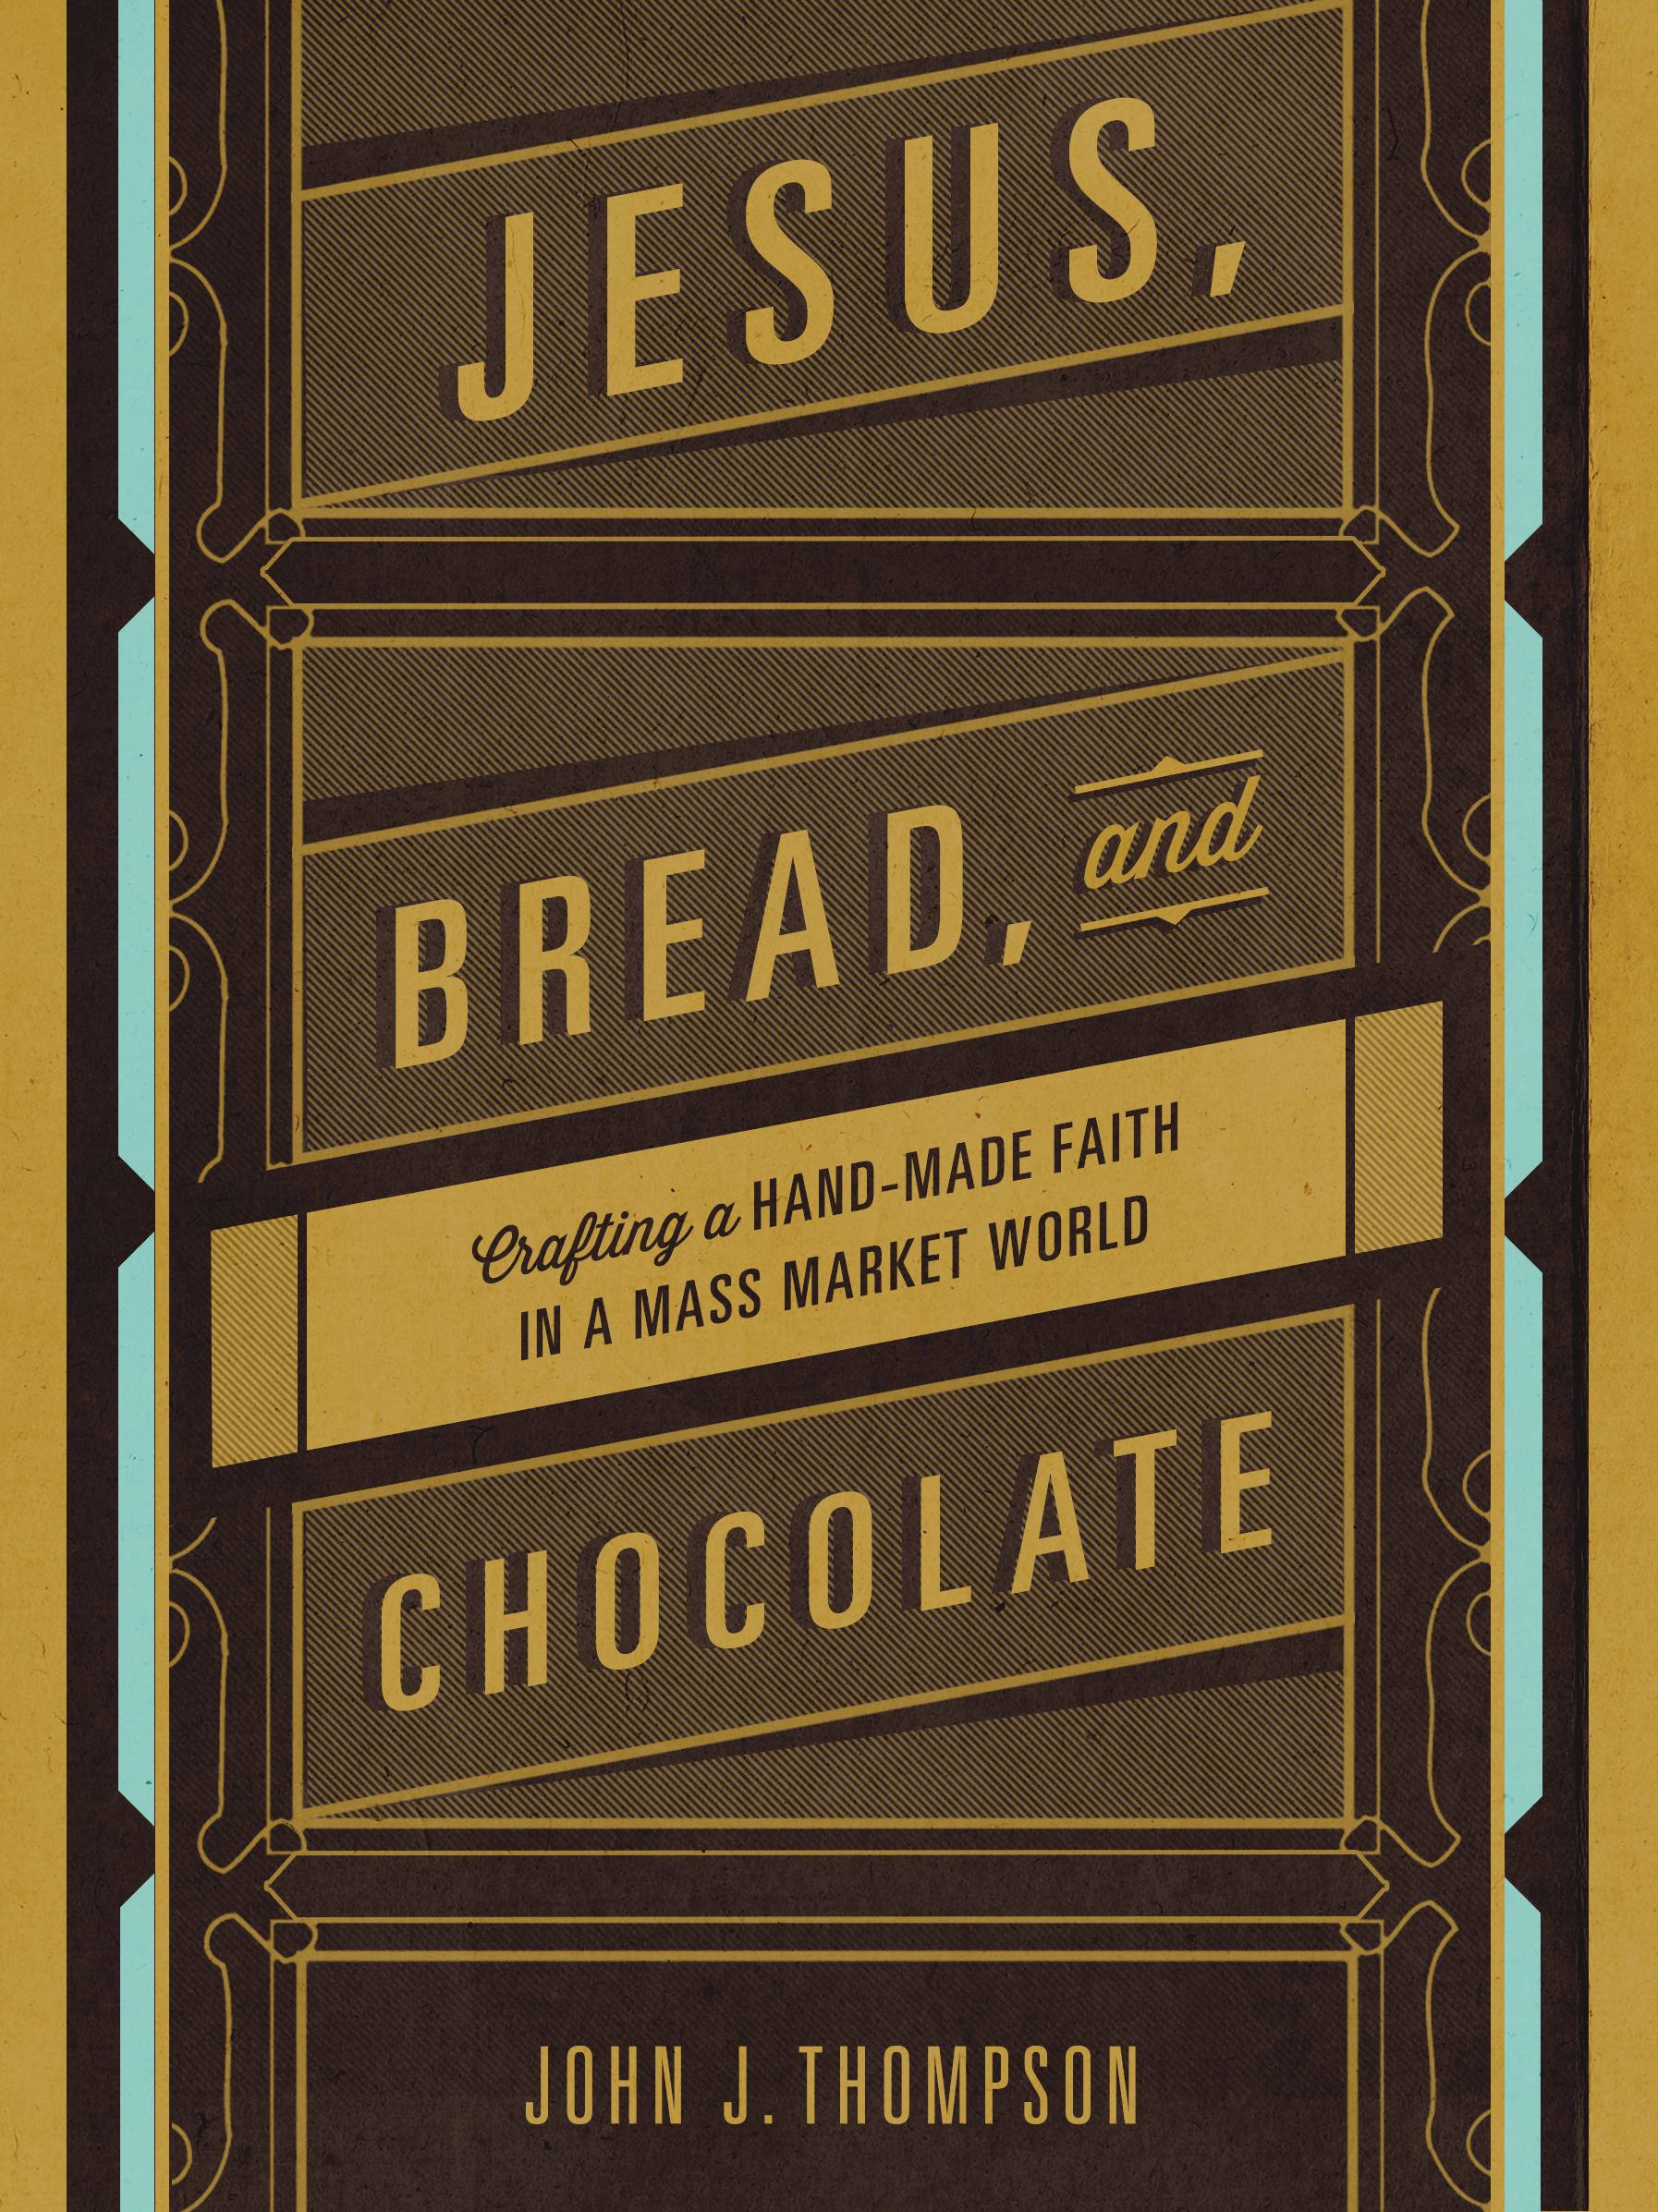 Jesus, Bread, and Chocolate book by John J. Thompson book cover